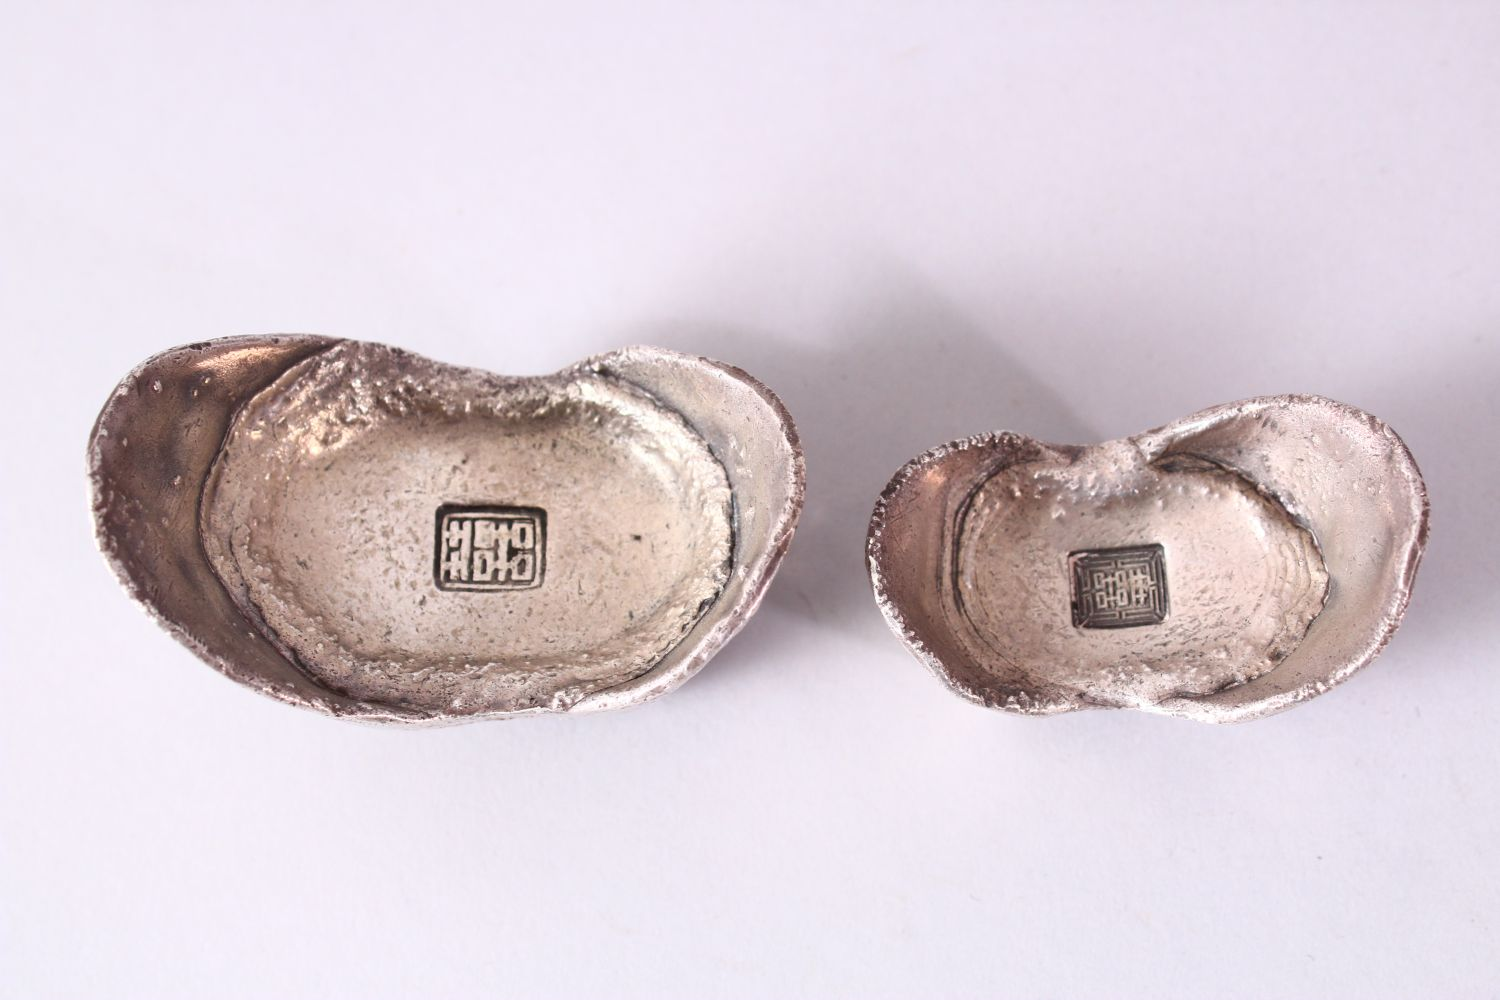 TWO PIECES OF CHINESE WHITE METAL POSSIBLY SILVER SHOE CURRENCY, 7cm and 6.5cm. - Image 2 of 3